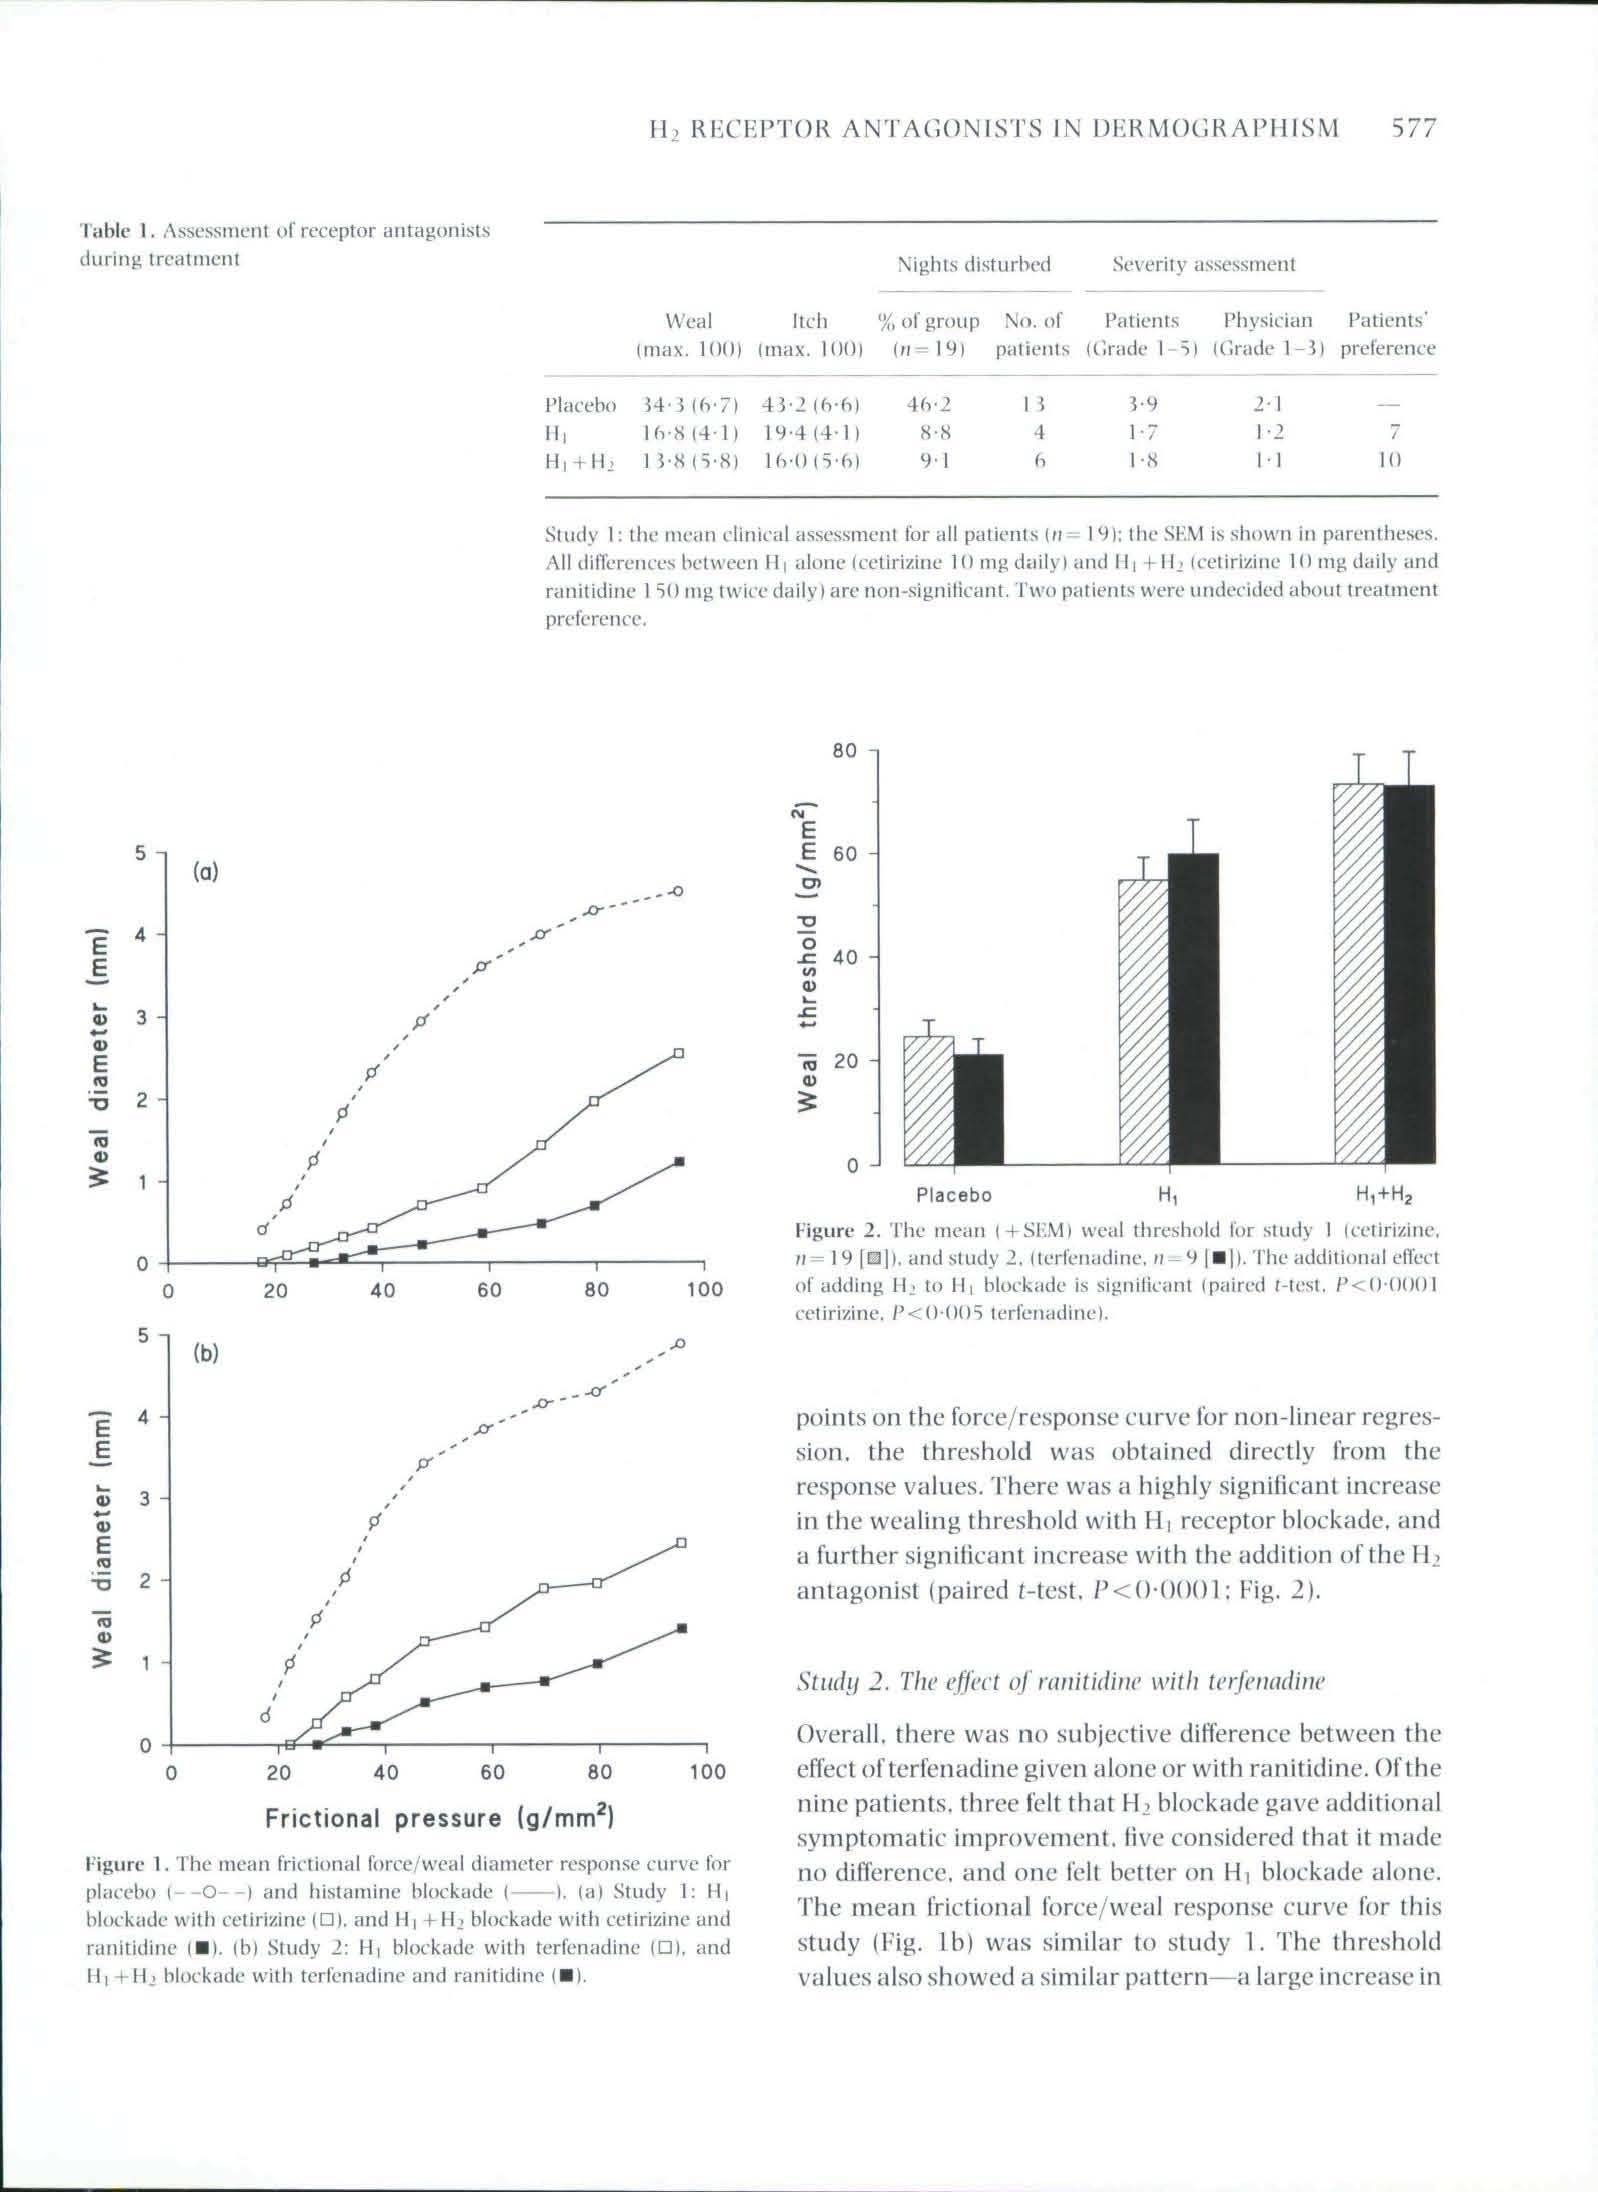 In dermographic urticaria H2 receptor antagonists have a small but therapeutically irrelevant additional effect compared with H1 antagonists alone_頁面_3.jpg